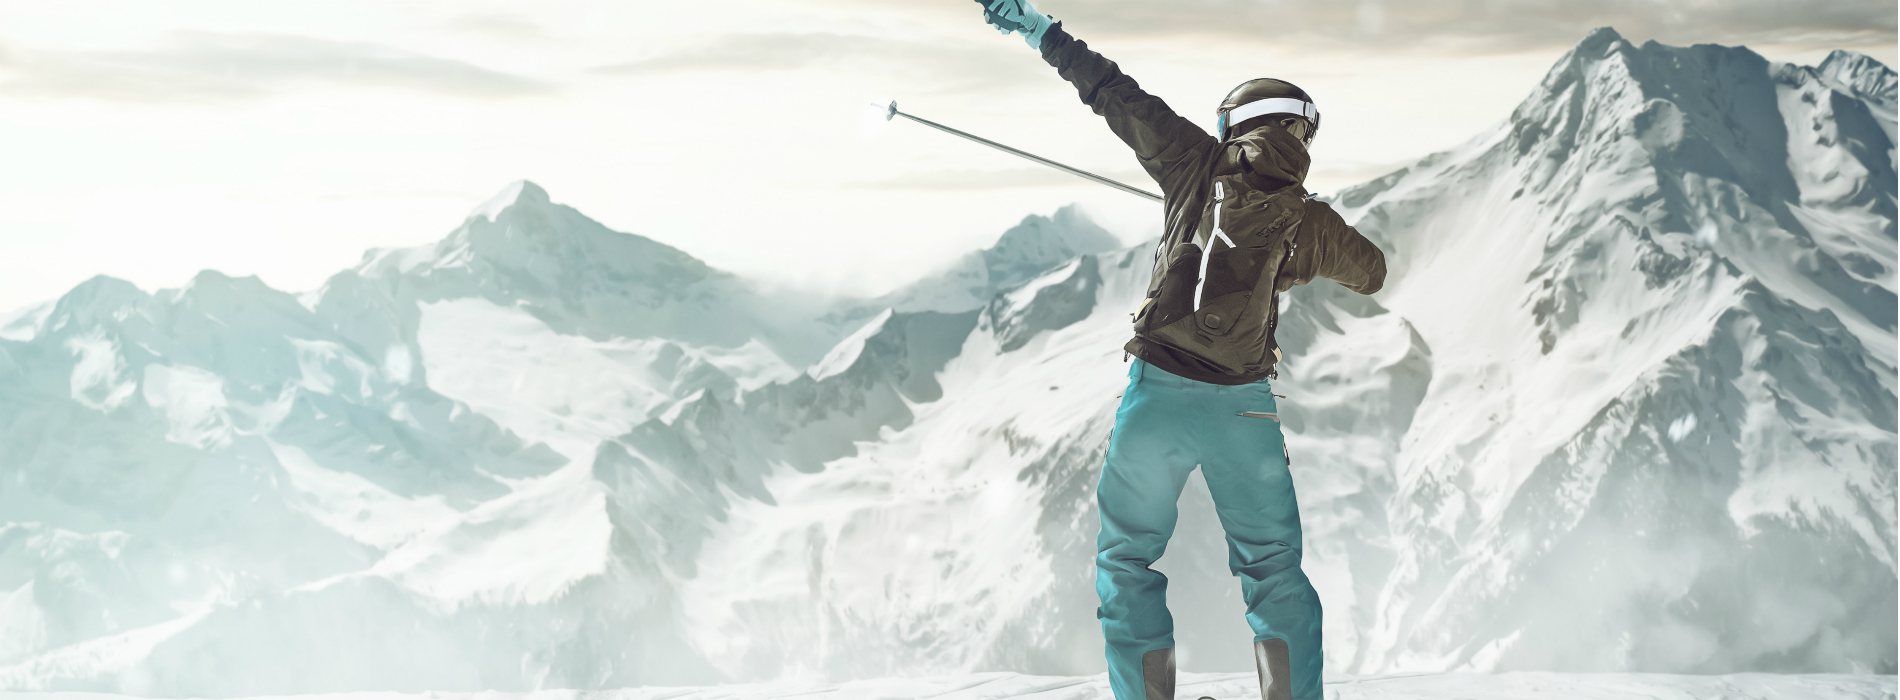 Skier on a mountain